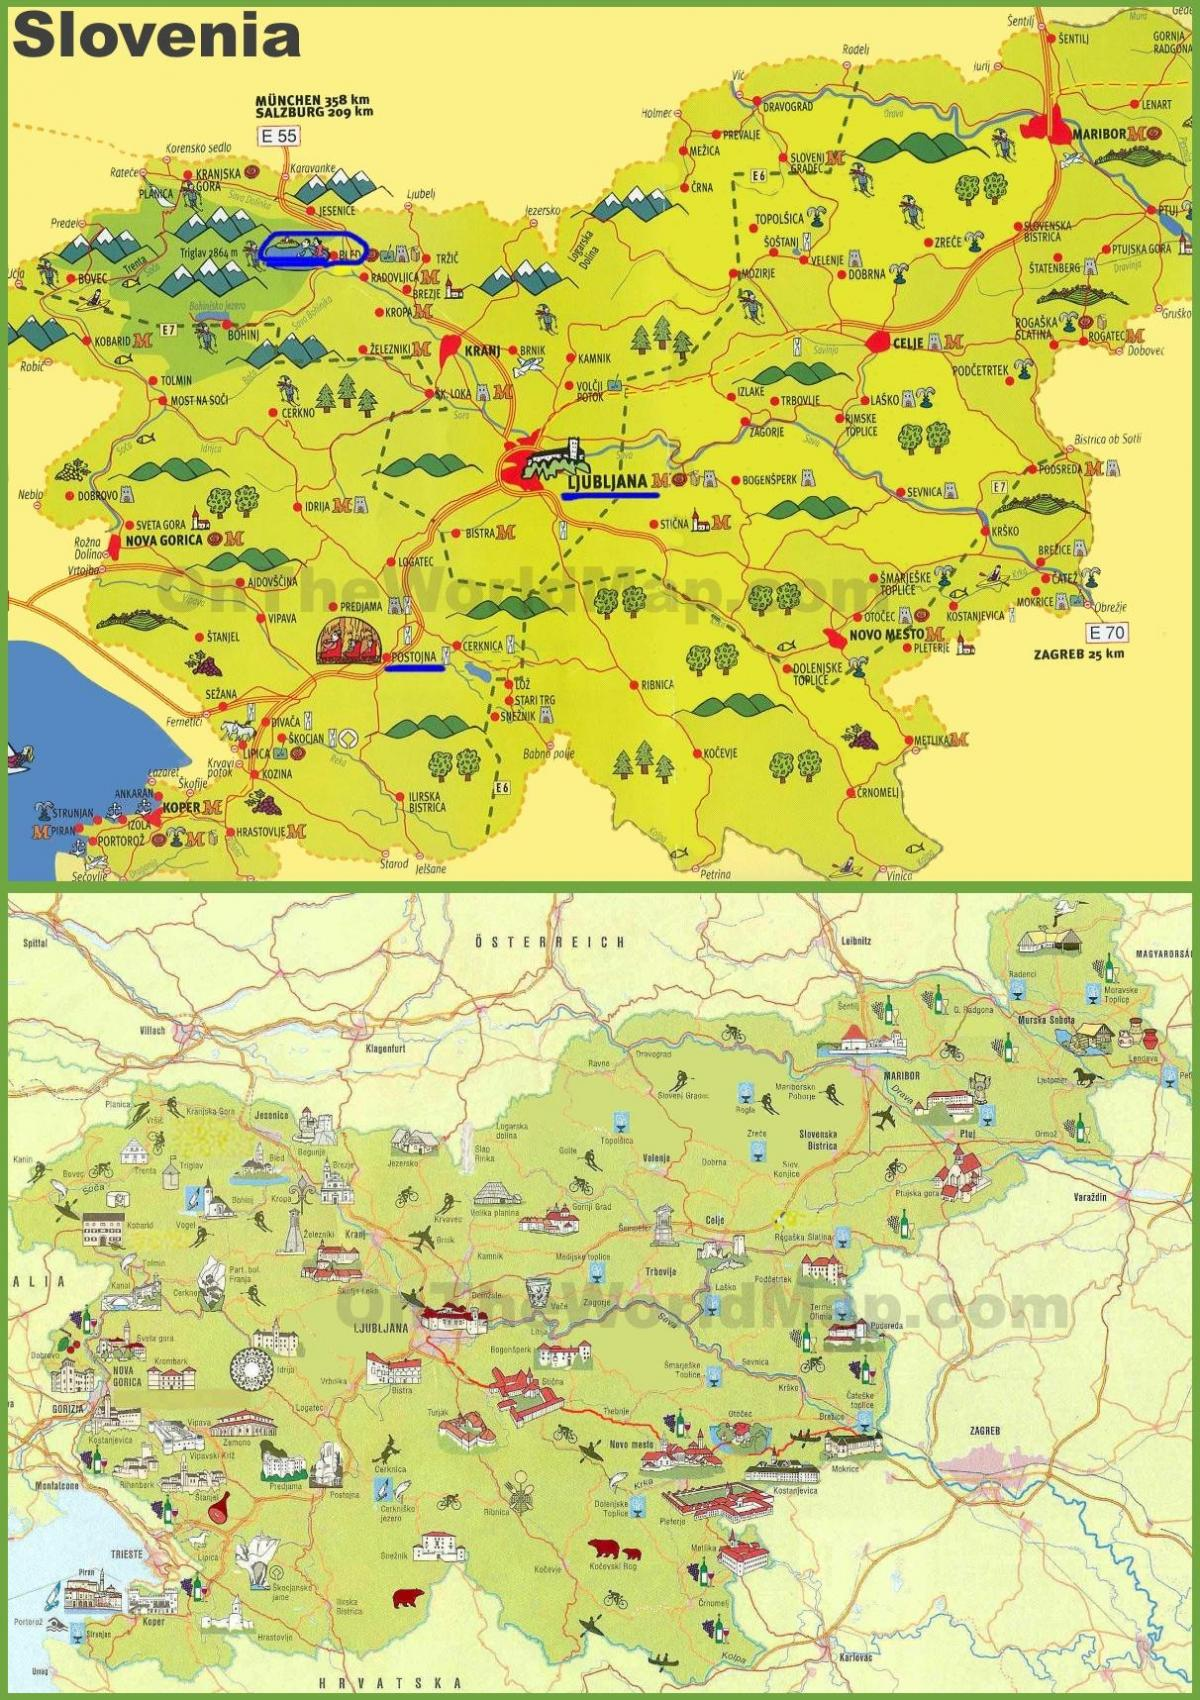 Slovenia travel map